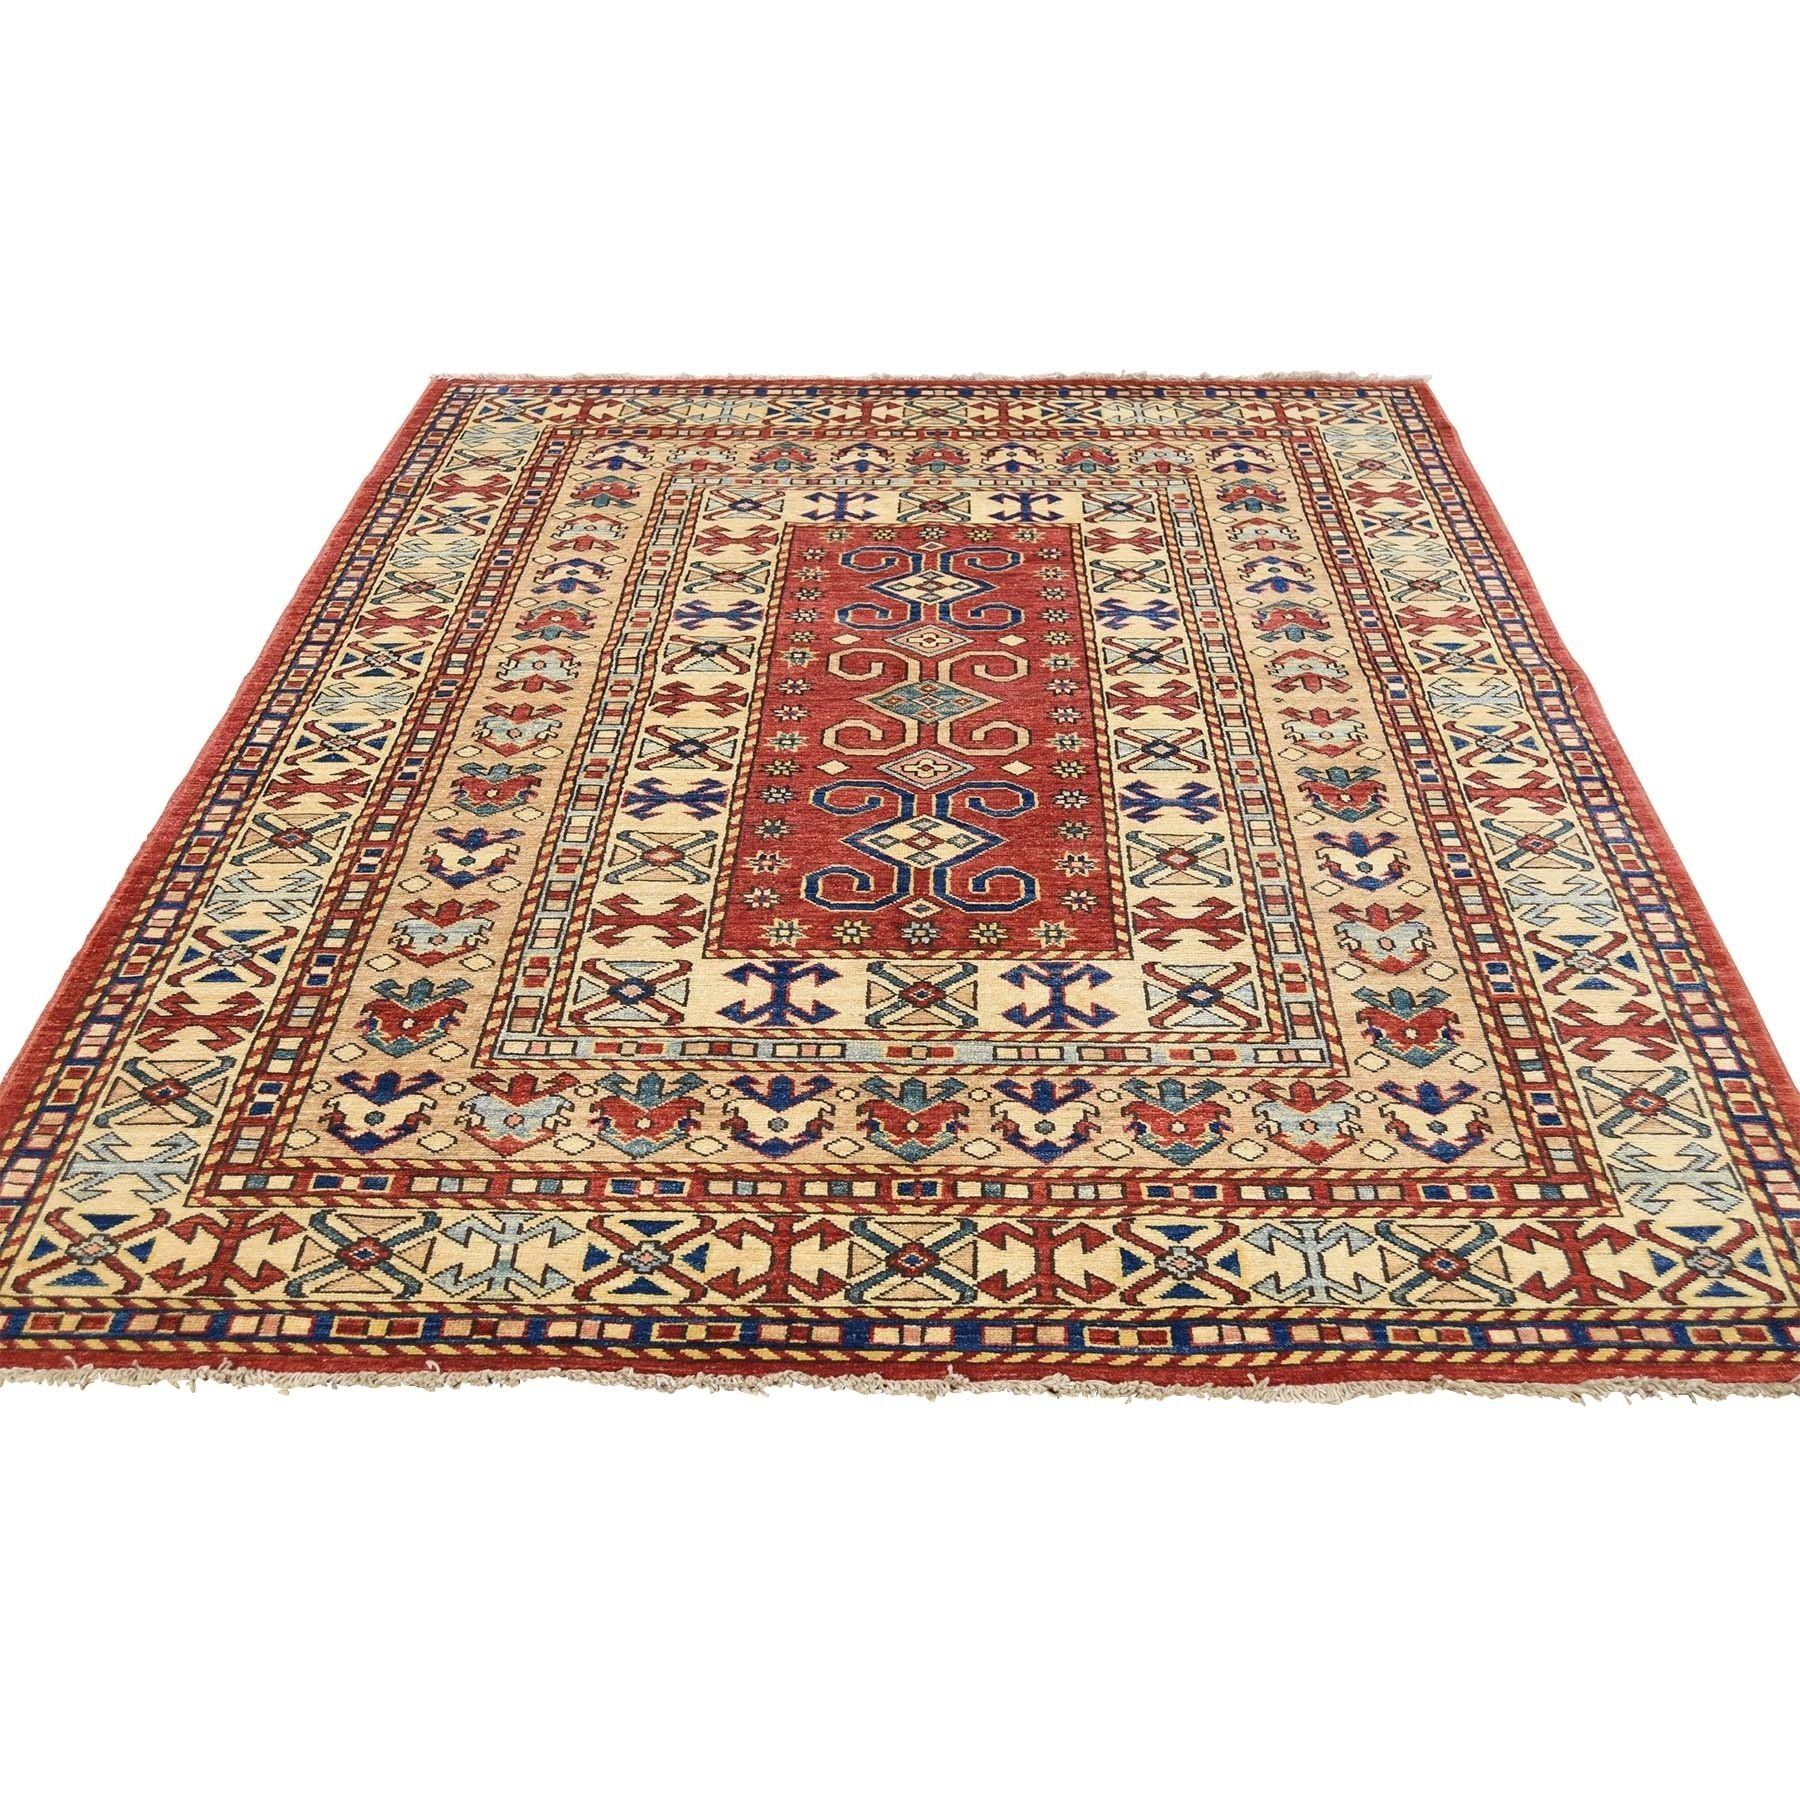 Shahbanu Rugs Hand Knotted Pure Wool Red Super Kazak Tribal Design Rug 5 0 X 6 3 Rugs Area Rugs Cheap Colorful Rugs